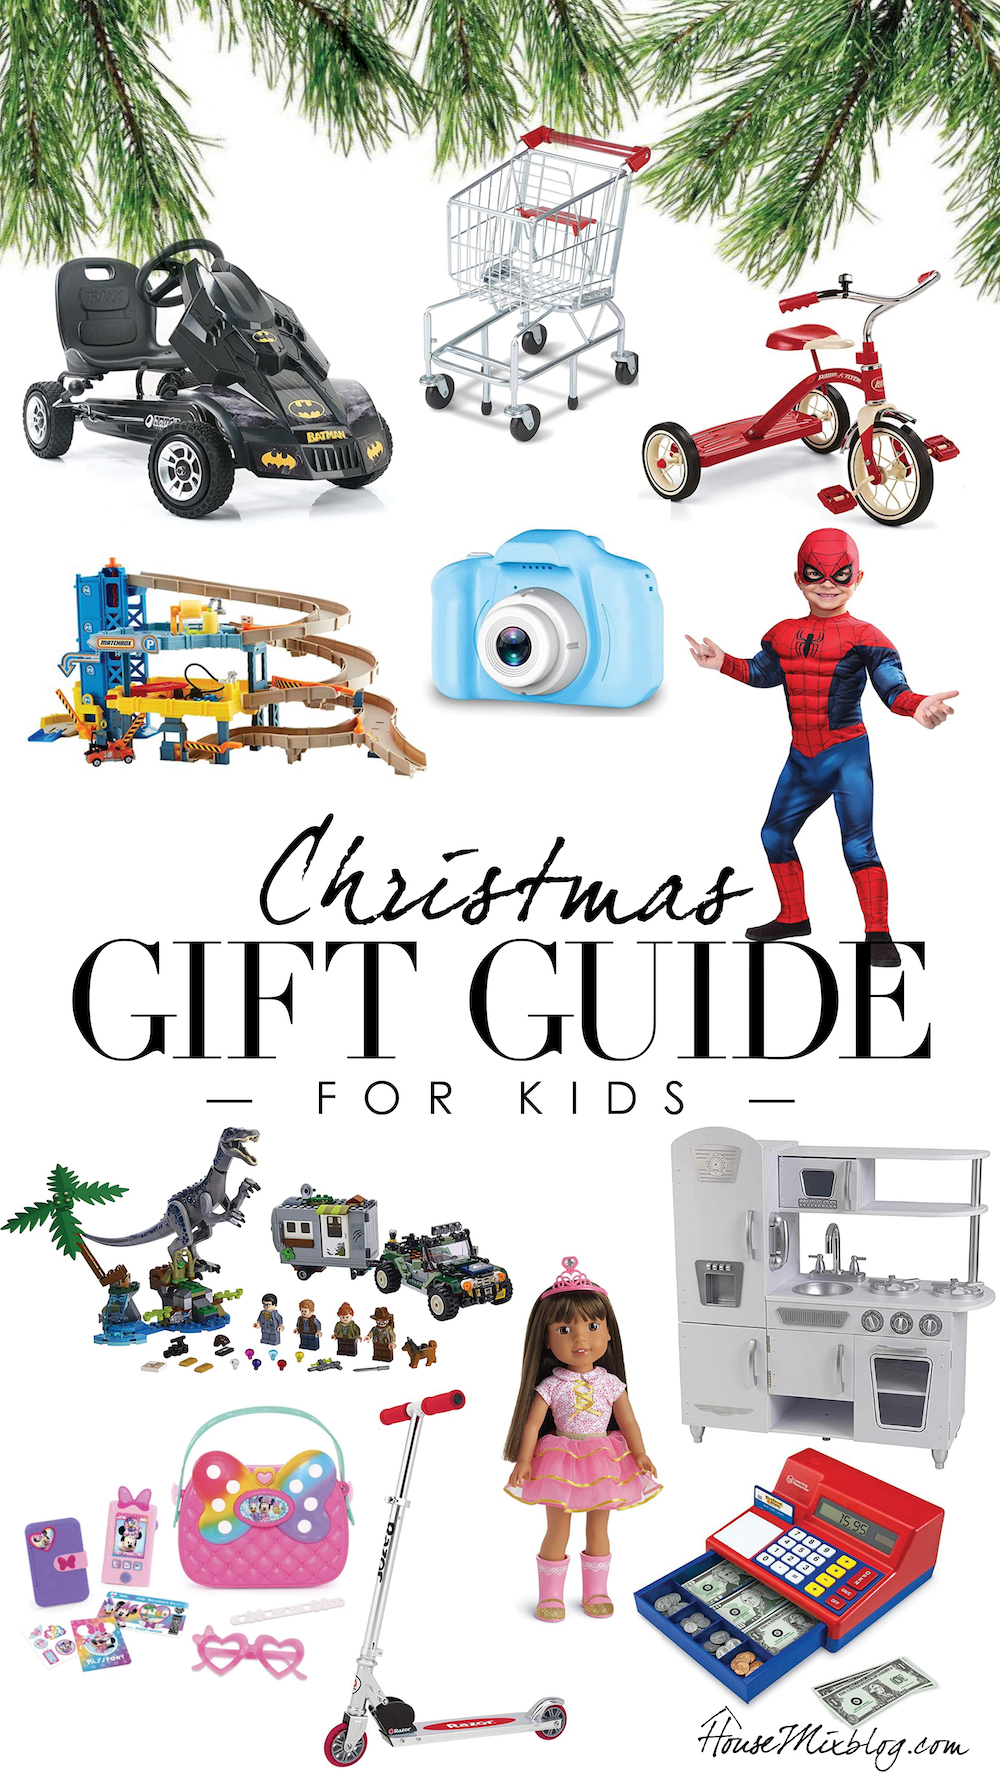 Christmas gift guides for kids - presents for boys and girls - classic toys